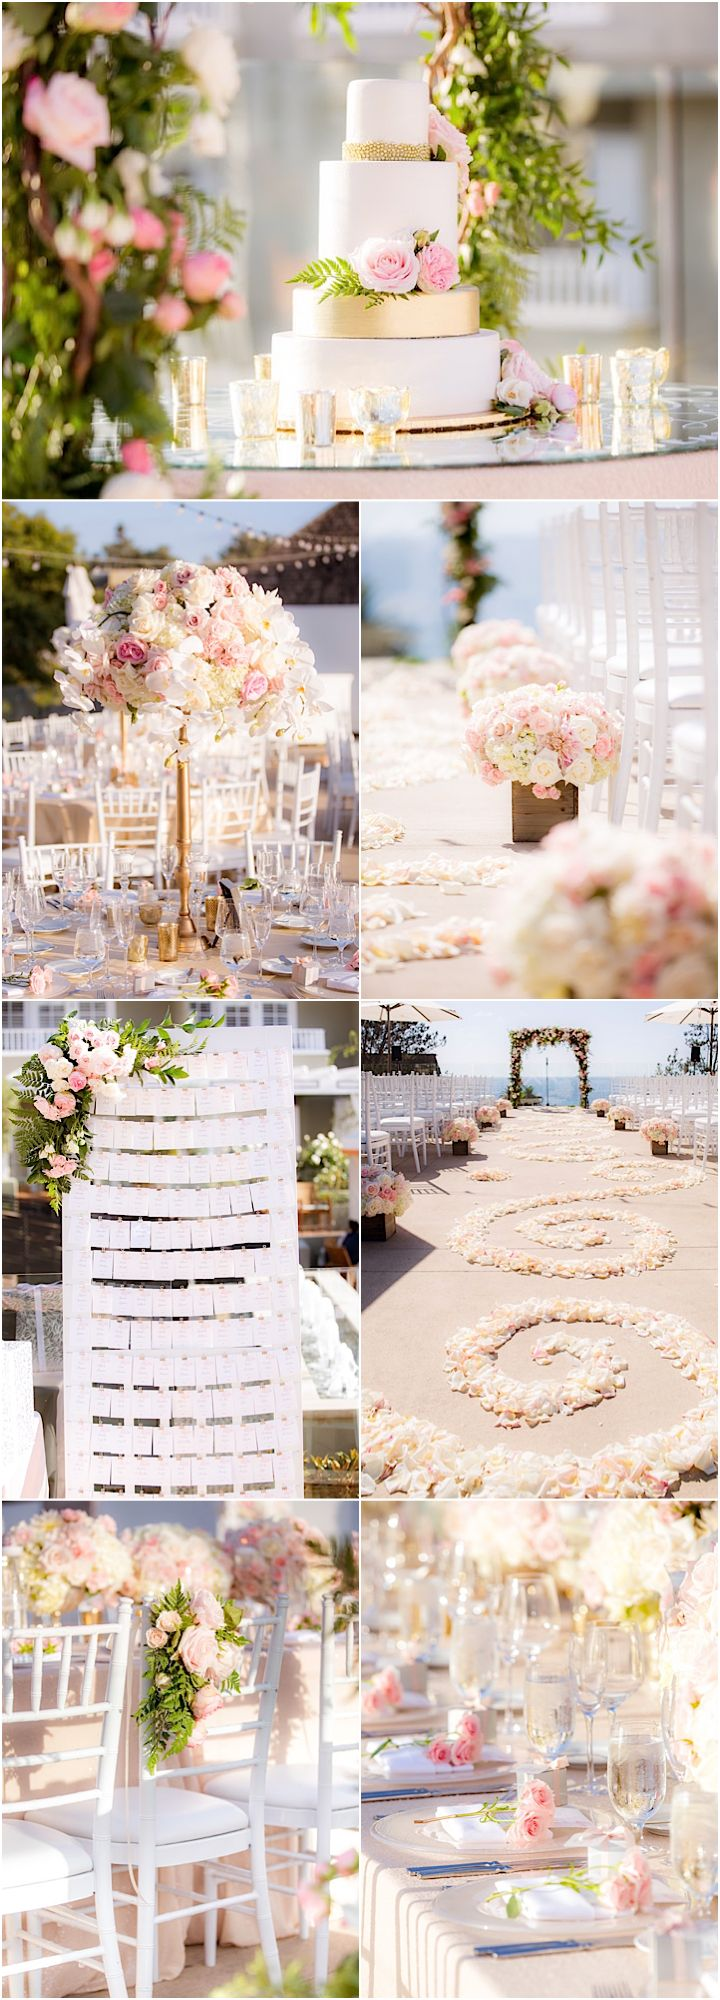 Featured Photographer: Clove & Kin; pink wedding idea